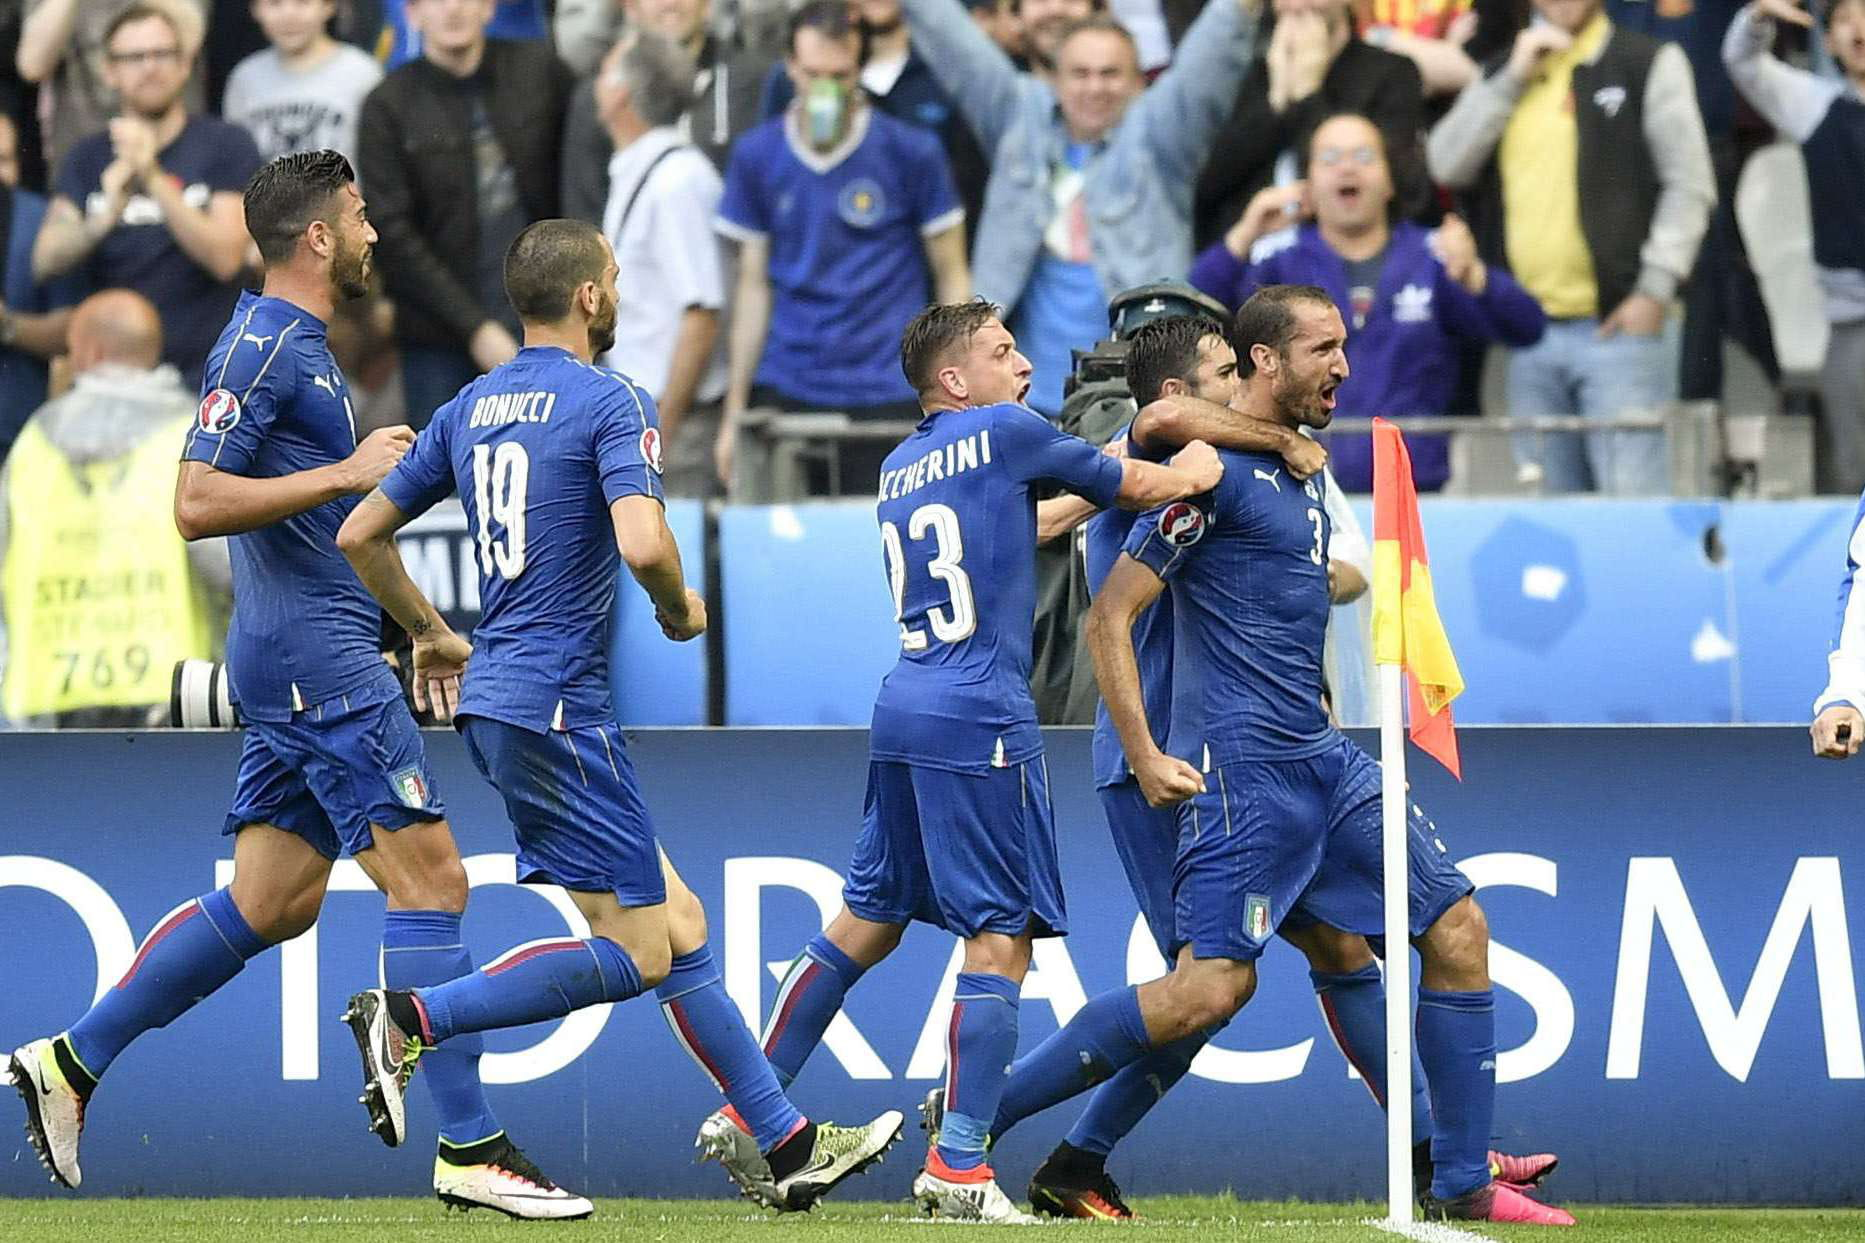 Quelques liens utiles - Coupe d italie en direct ...